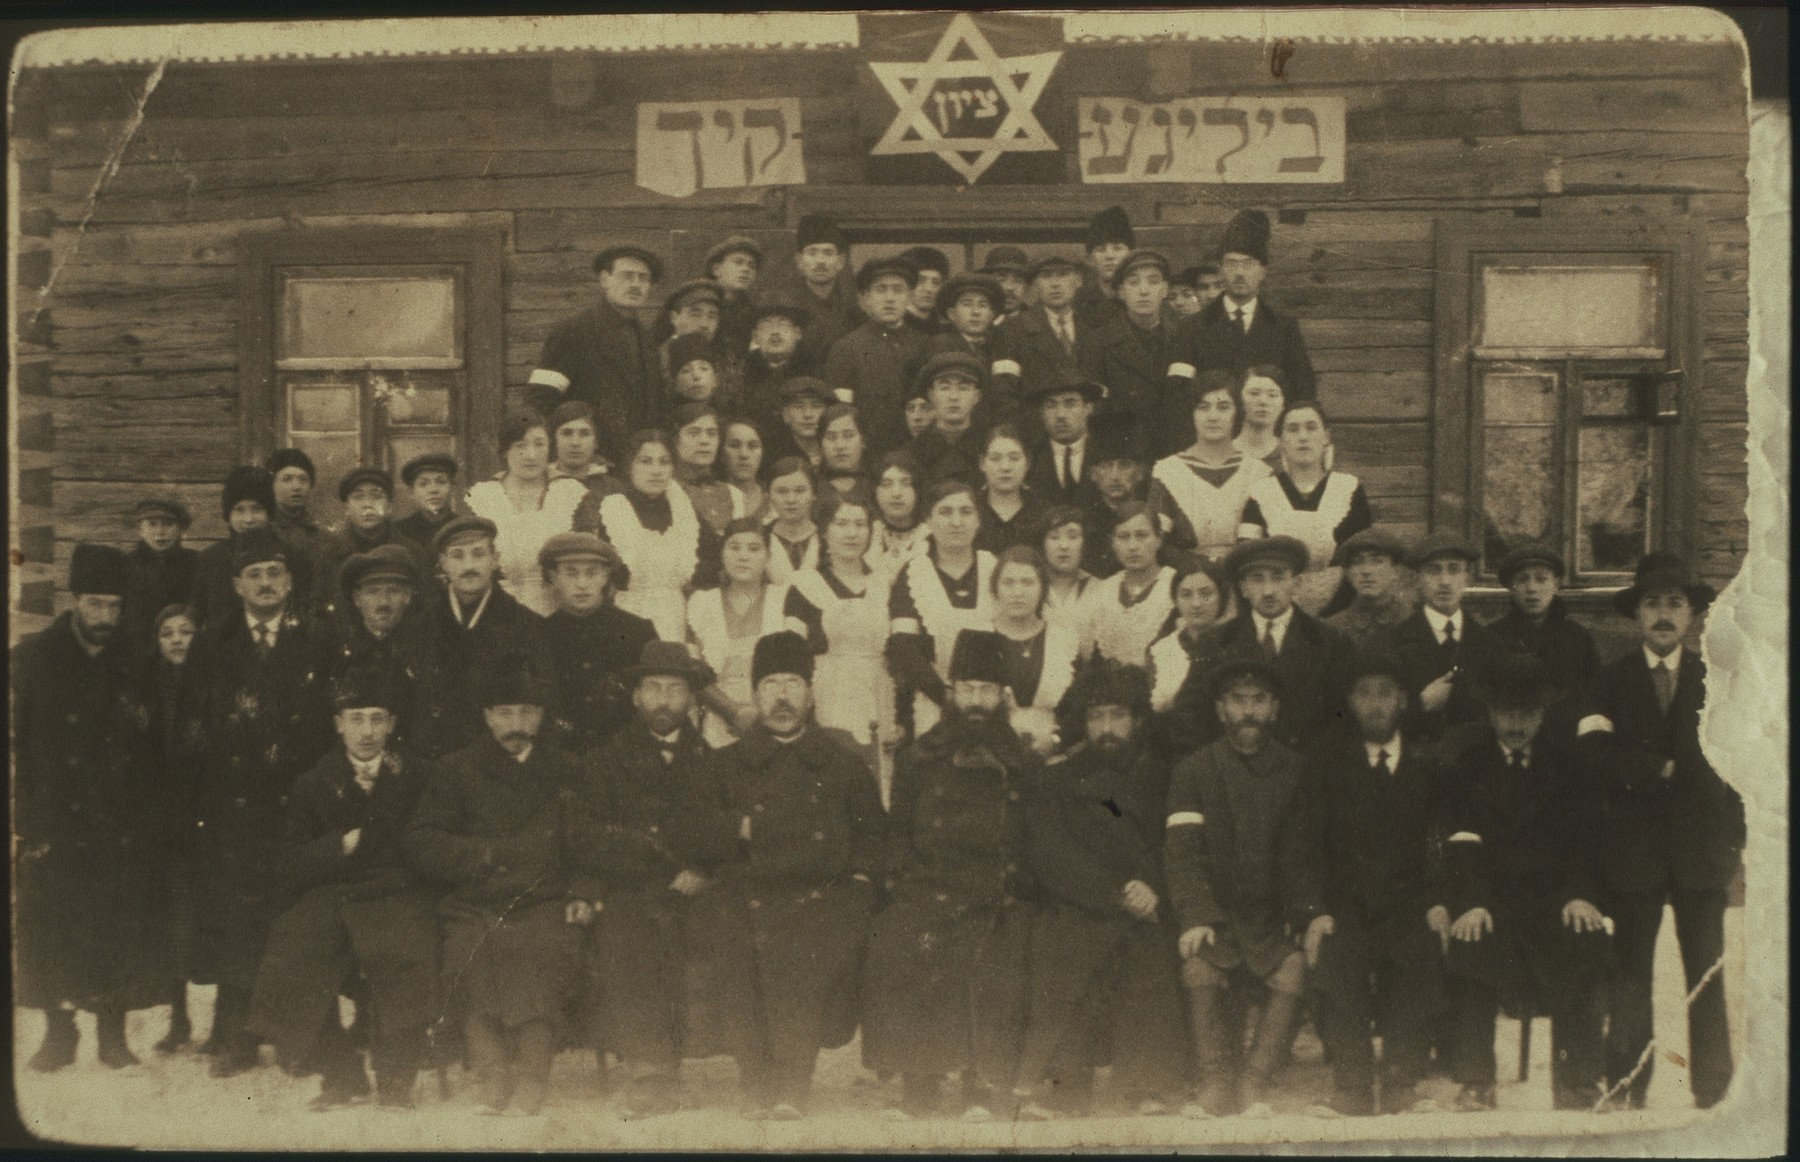 Staff of the soup kitchen in Eisiskes.  The soup kitchen was established during World War I to prevent large-scale starvation and served both Jews and non-Jews.  It also was the town's first coed voluntary society.  Among those pictured are Meir Kiuchefski, Maneh Michalowski, the Lewinson sisters, Zivia Hutner, and members of the Sonenson, Abelowicz and Schneider families.